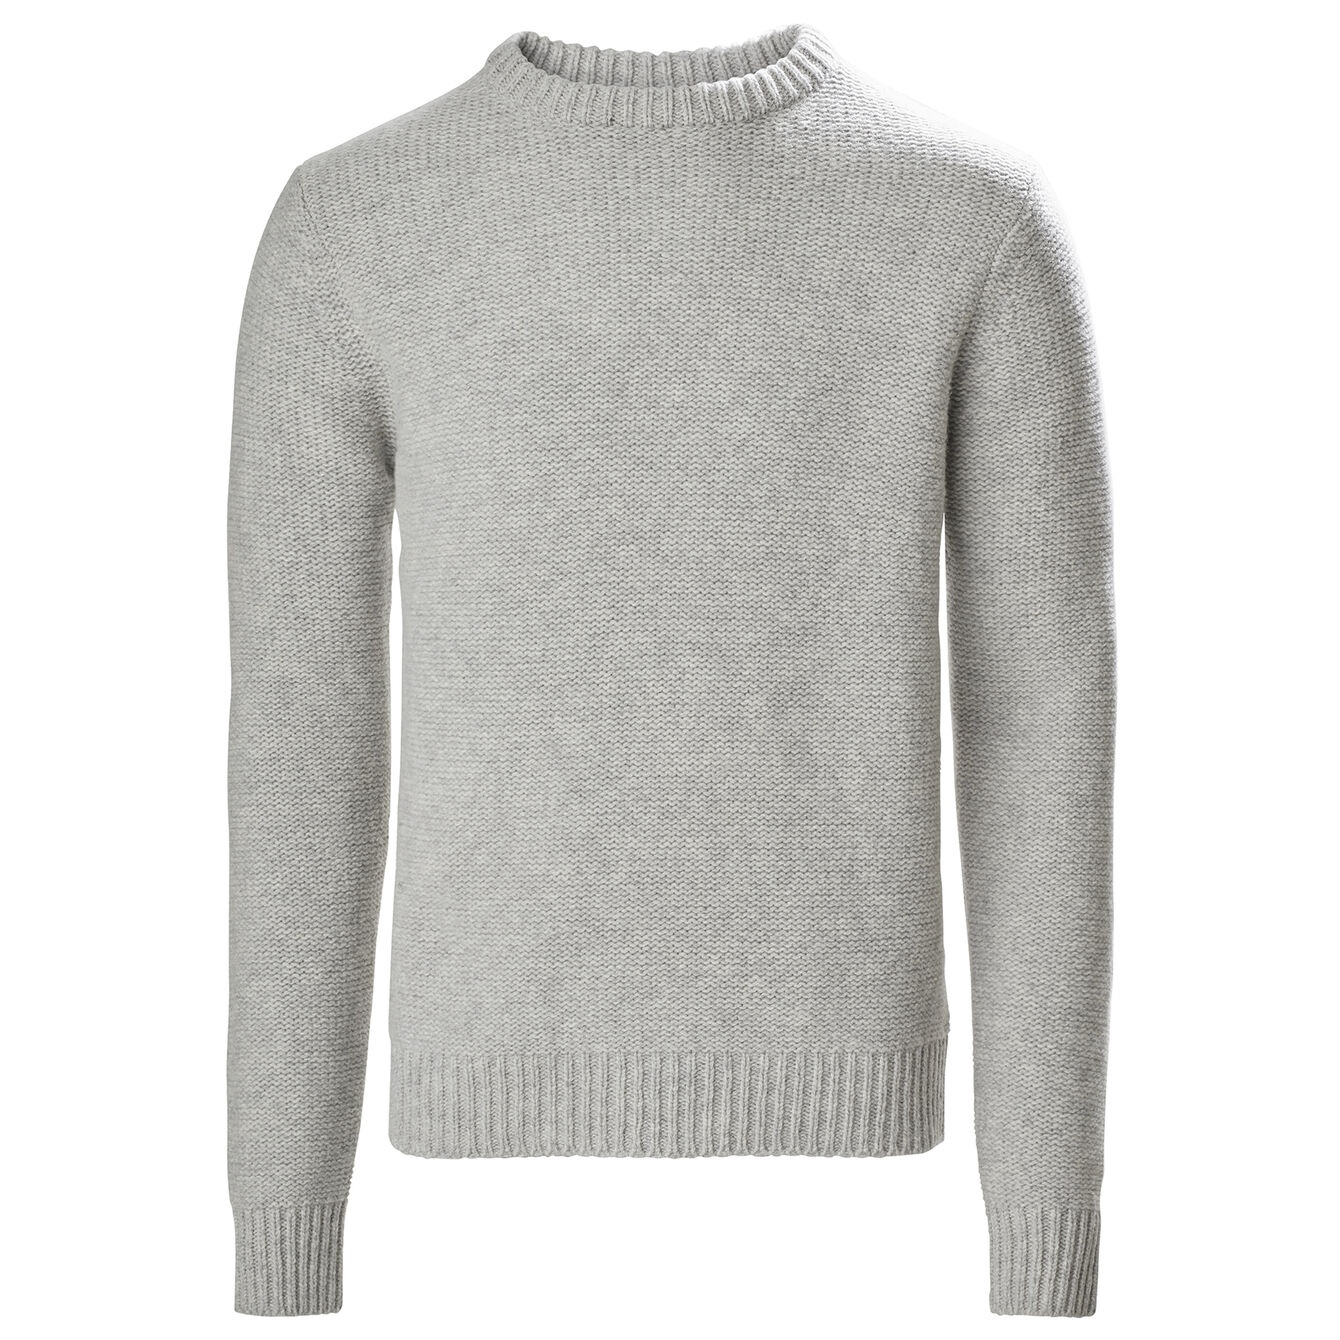 MARINA WOOL CREW KNIT